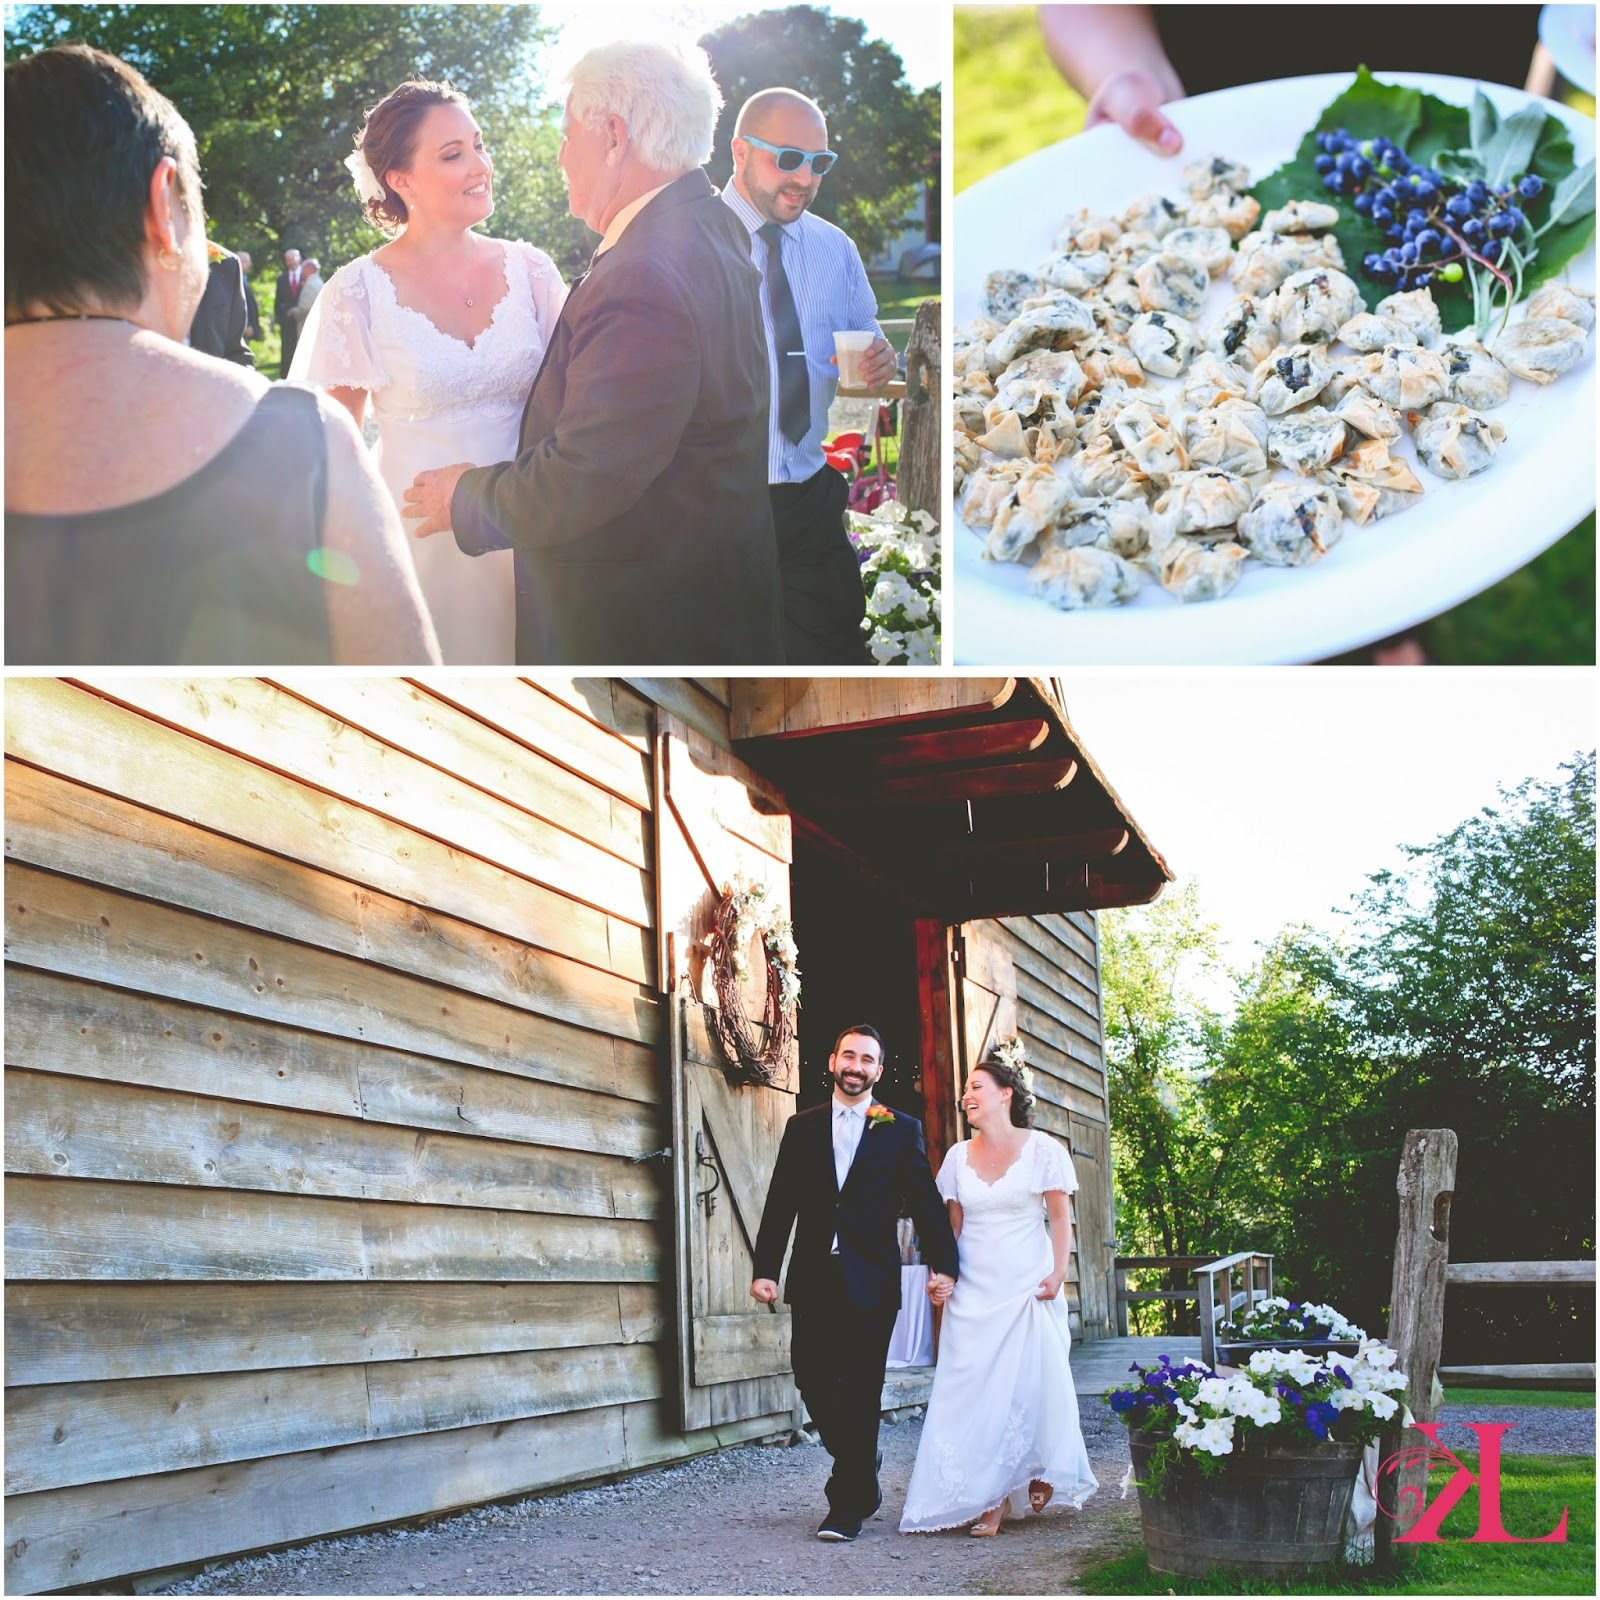 This Past Weekend I Photographed Chris Andrea S Vintage Inspired Barn Wedding At Beautiful They Had Perfect Weather Scenery And An